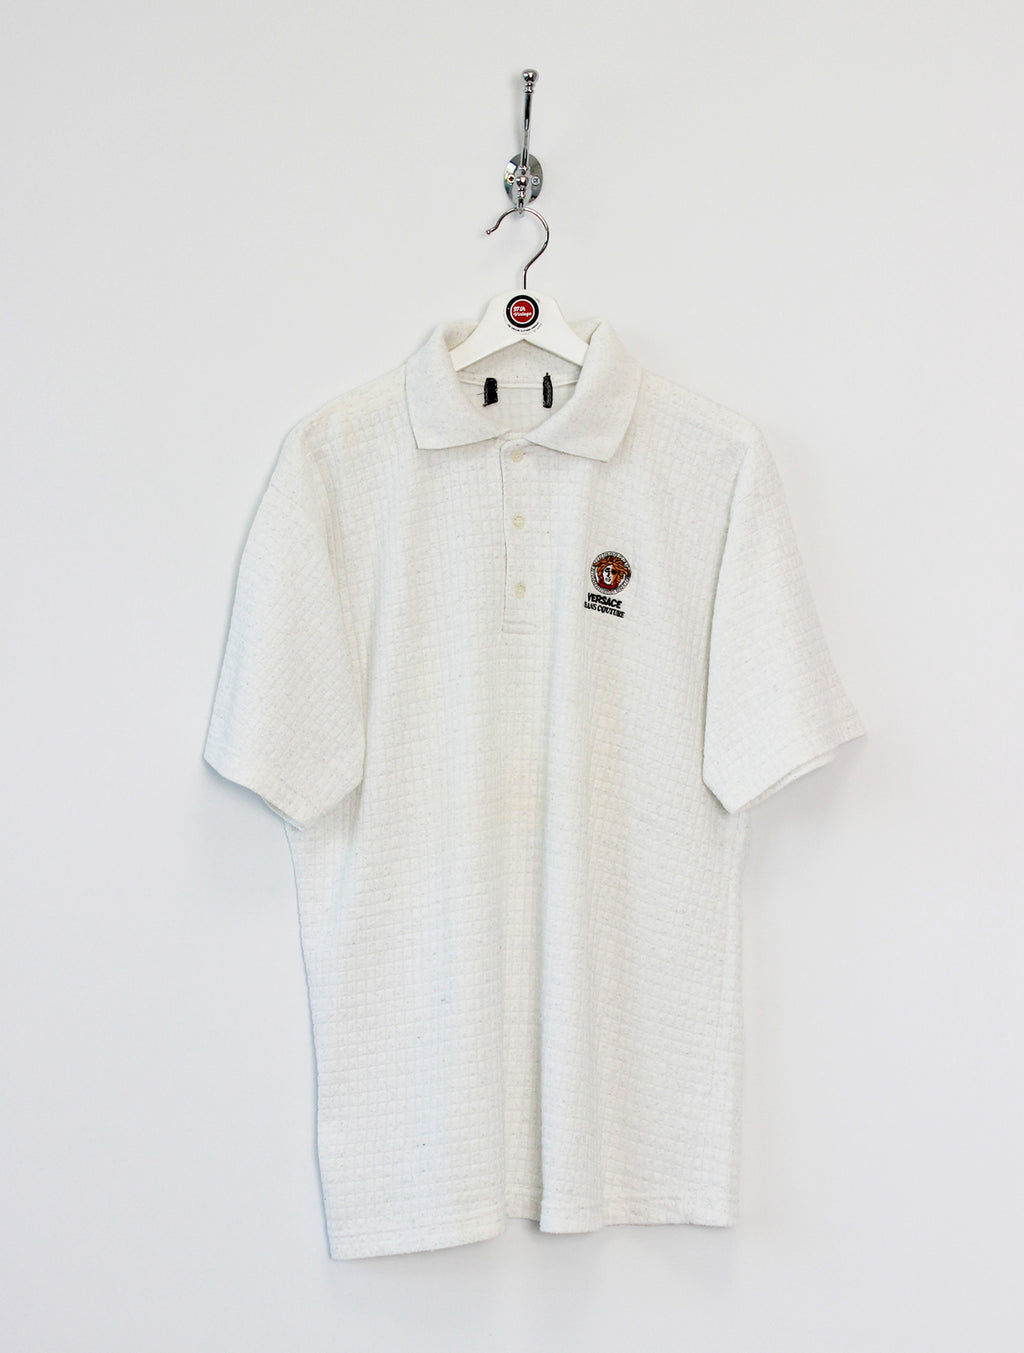 Versace Polo Shirt (XL)